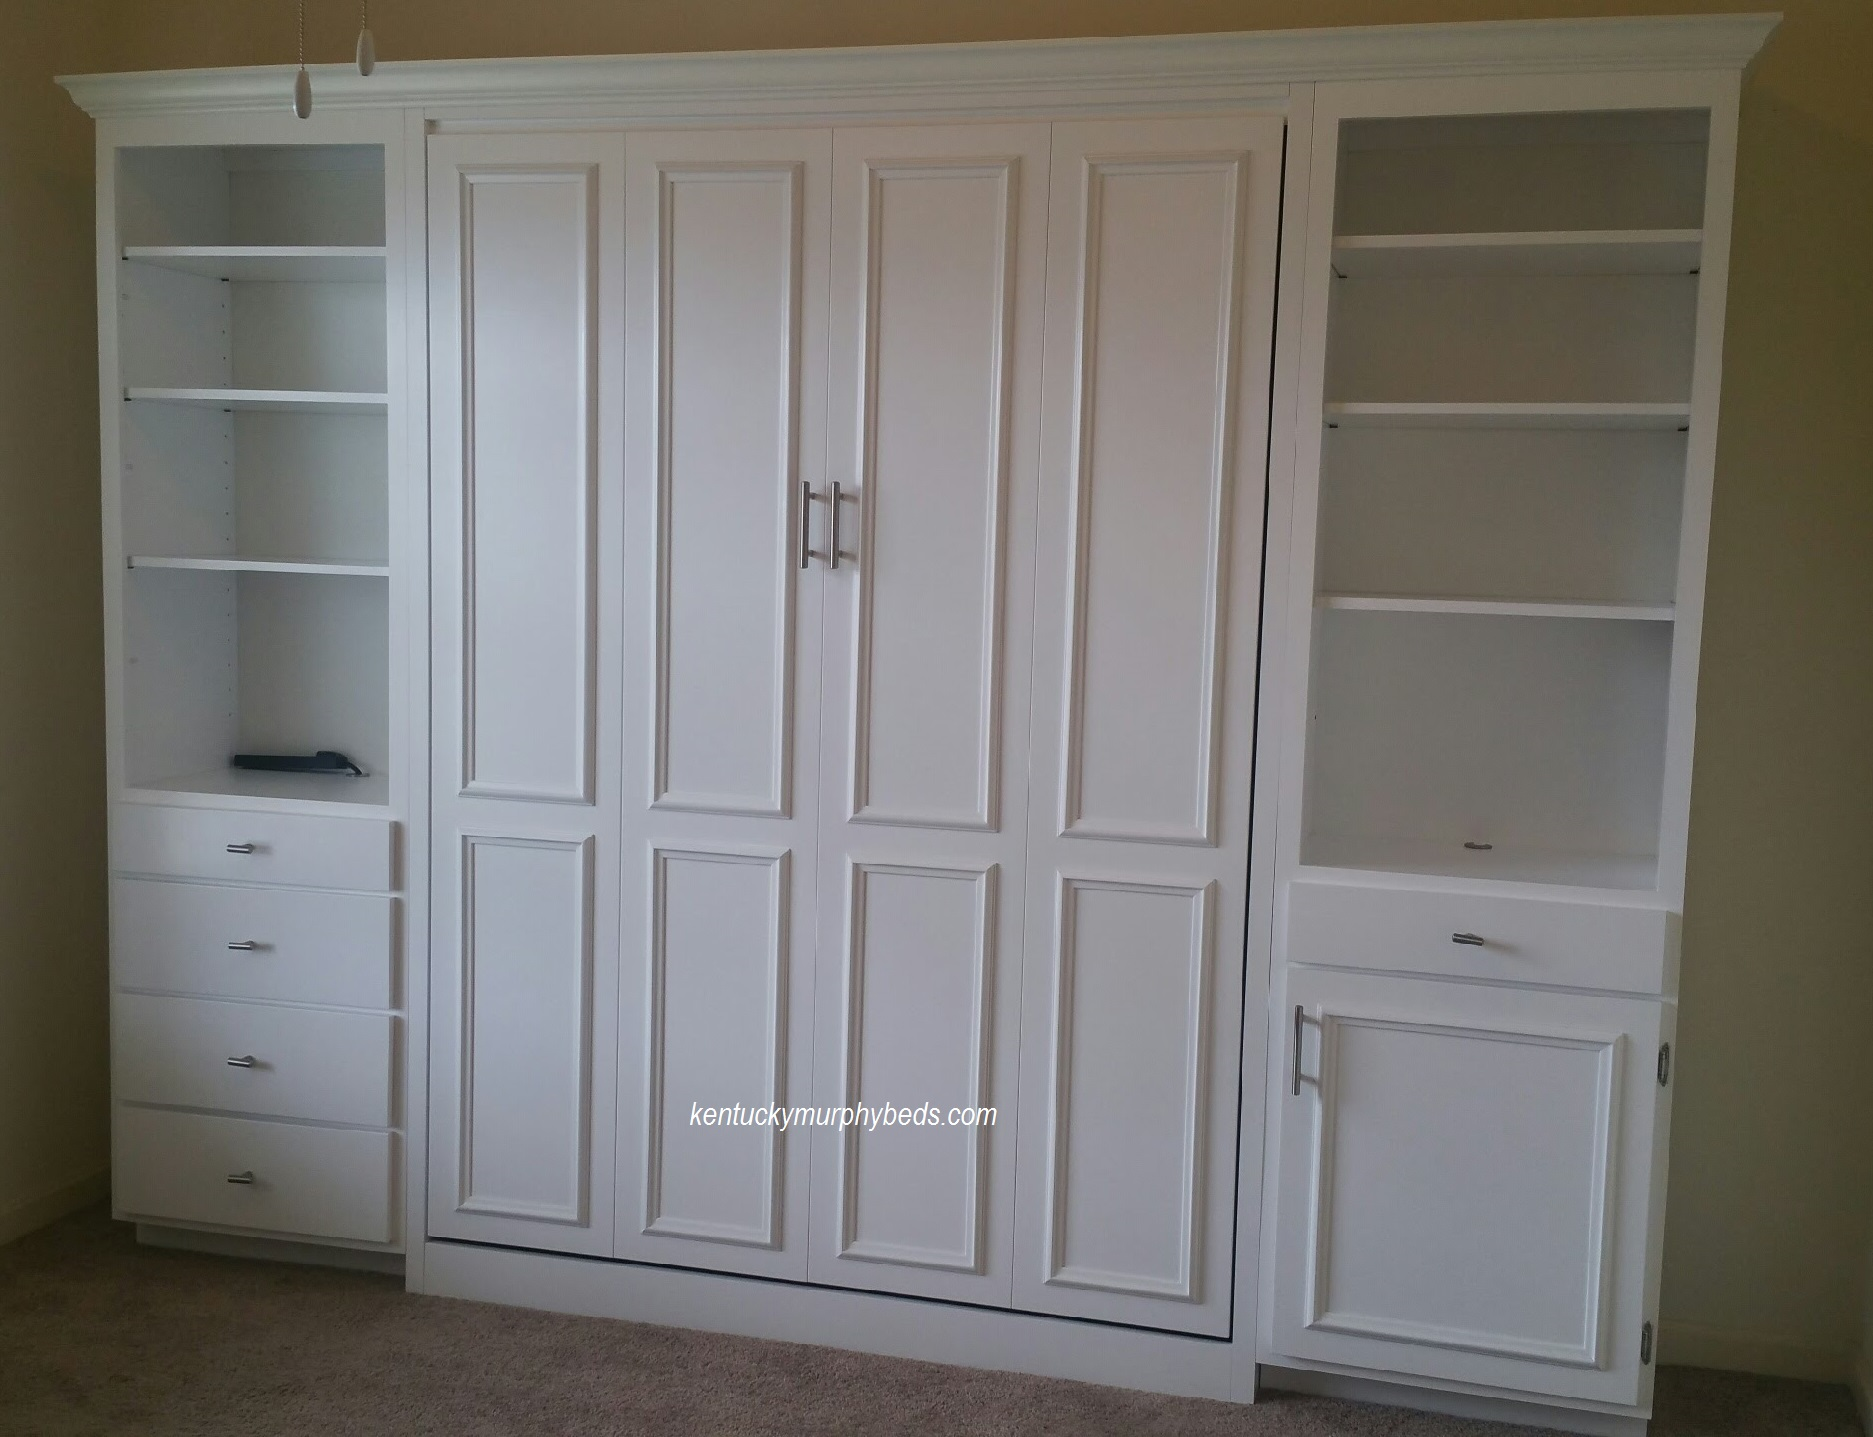 queen murphy bed with surface trim on panel and cupboard door